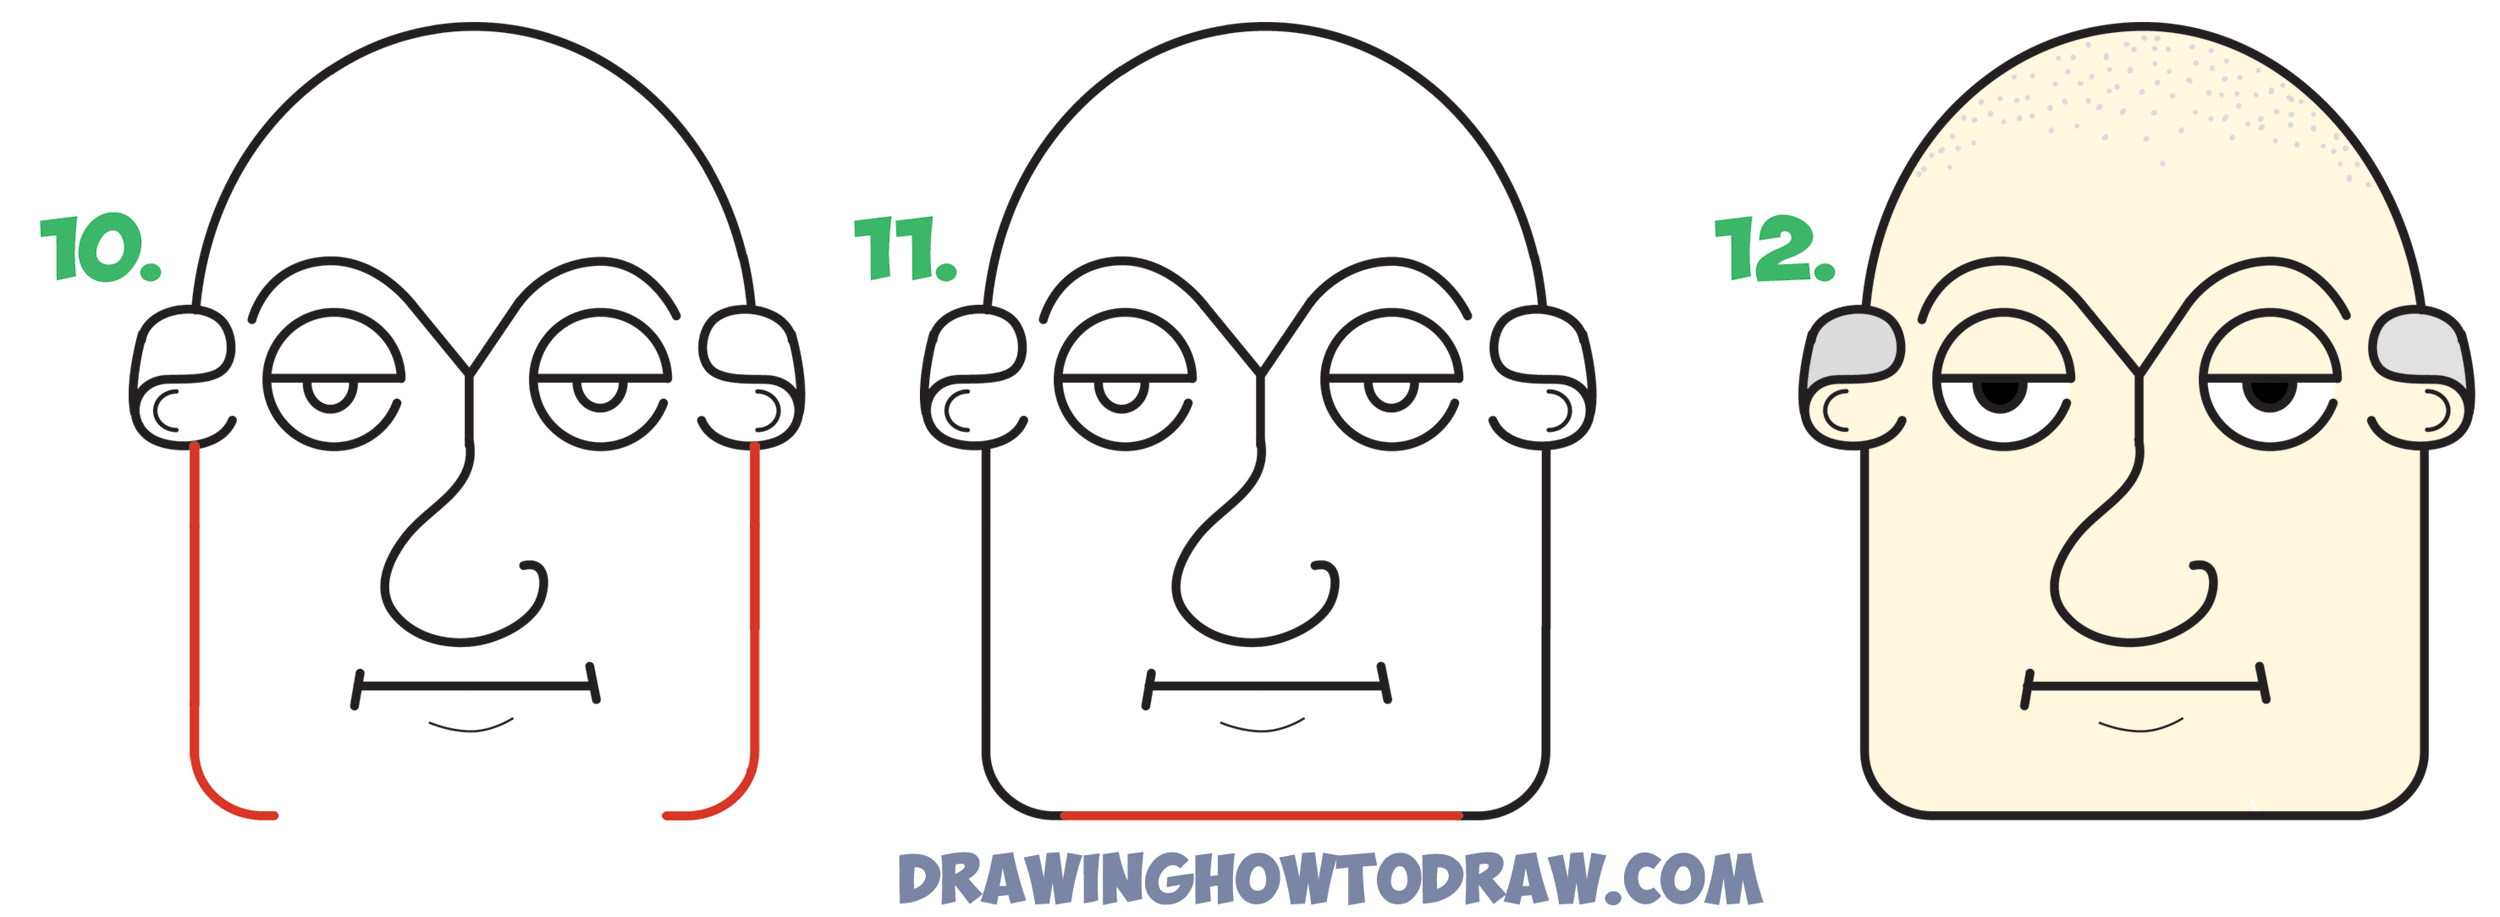 How To Draw A Hulk Face Solution For How To For Dummies How To Draw A